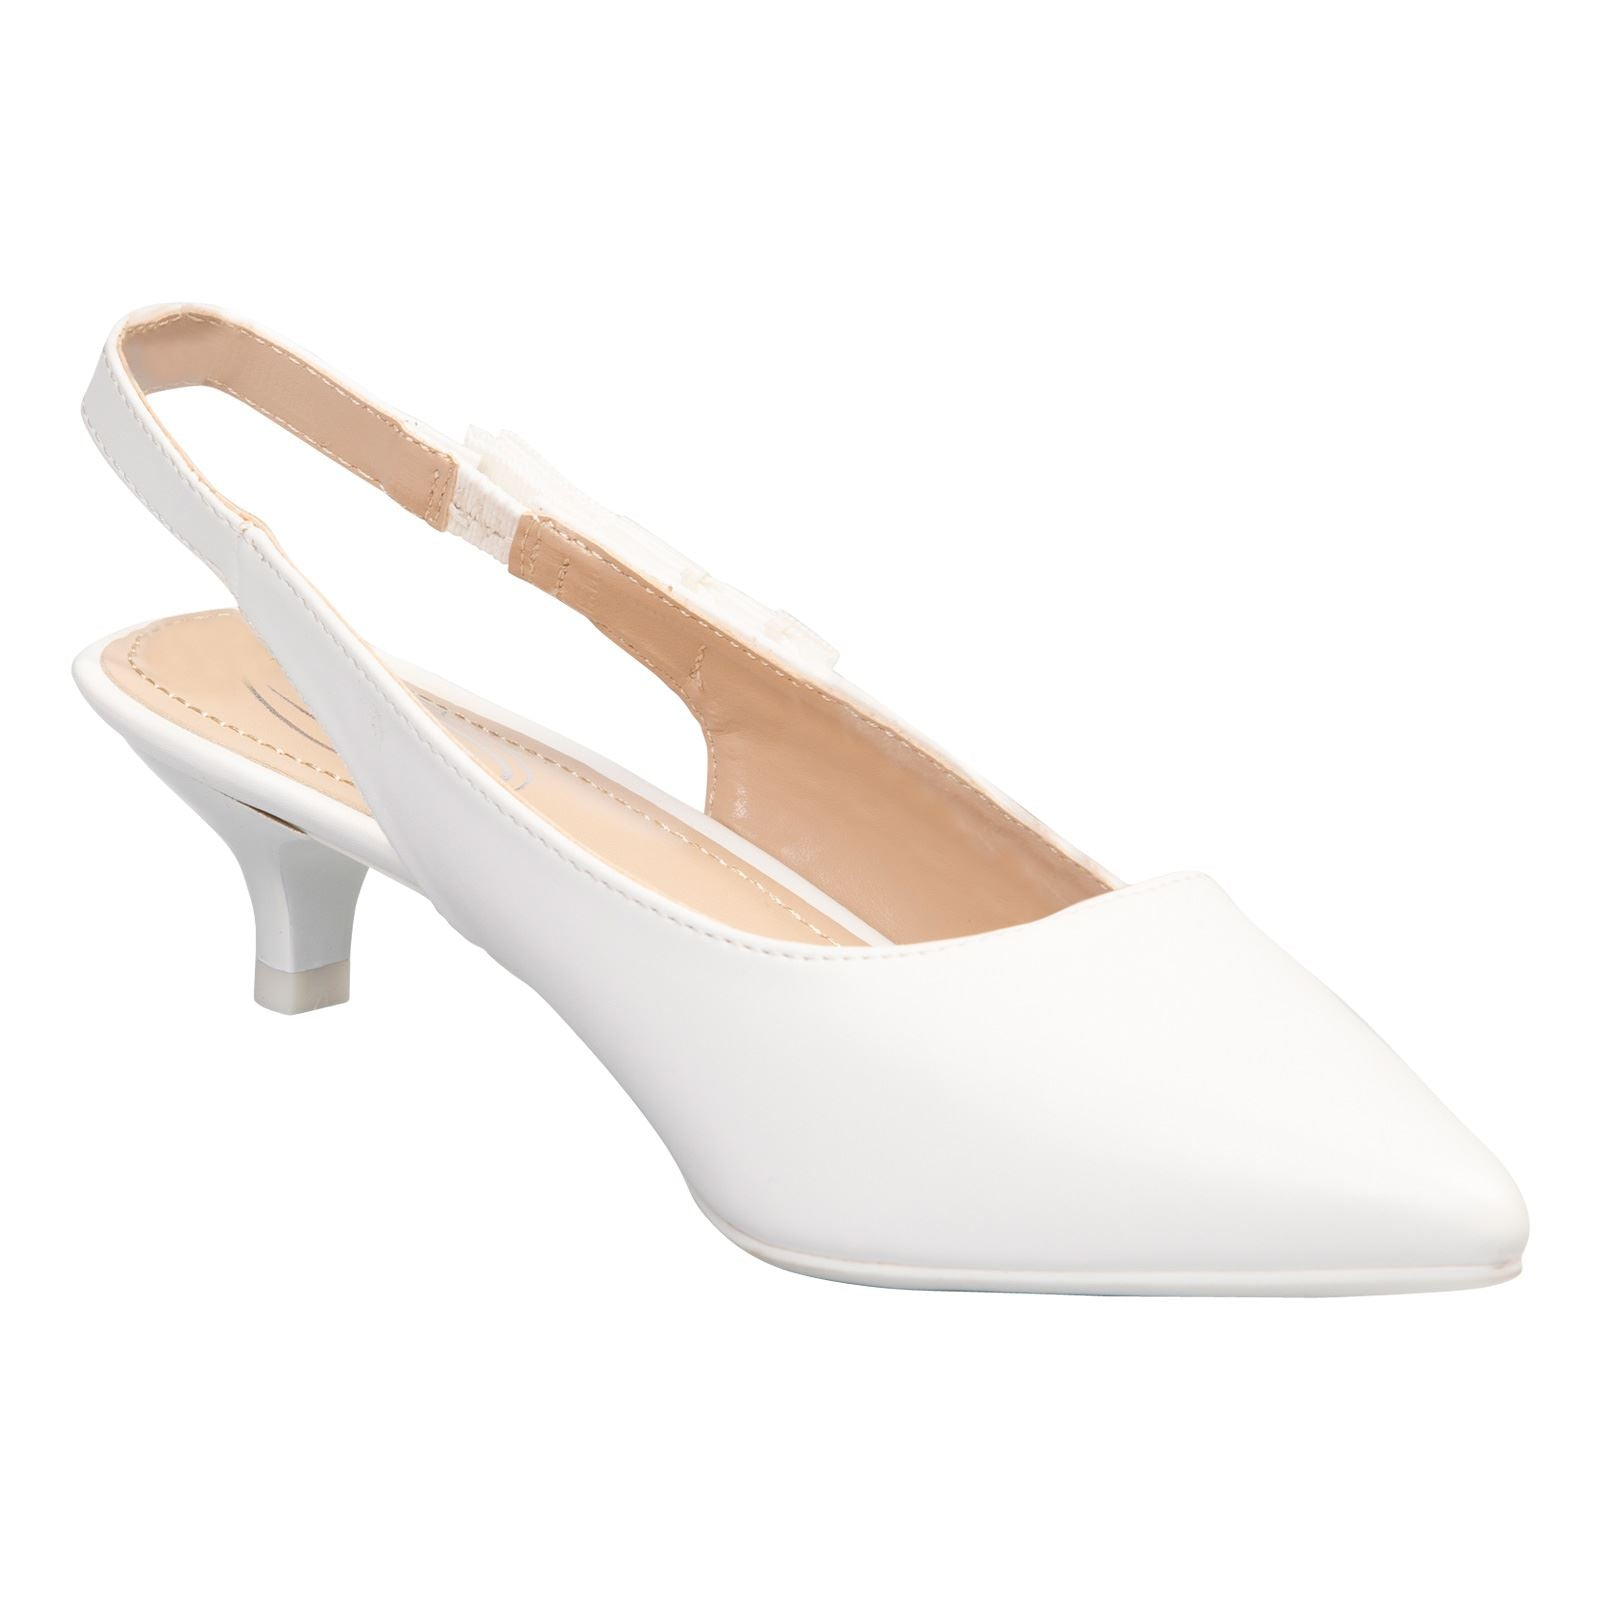 Alora Slingback Pumps in White Faux Leather - Feet First Fashion